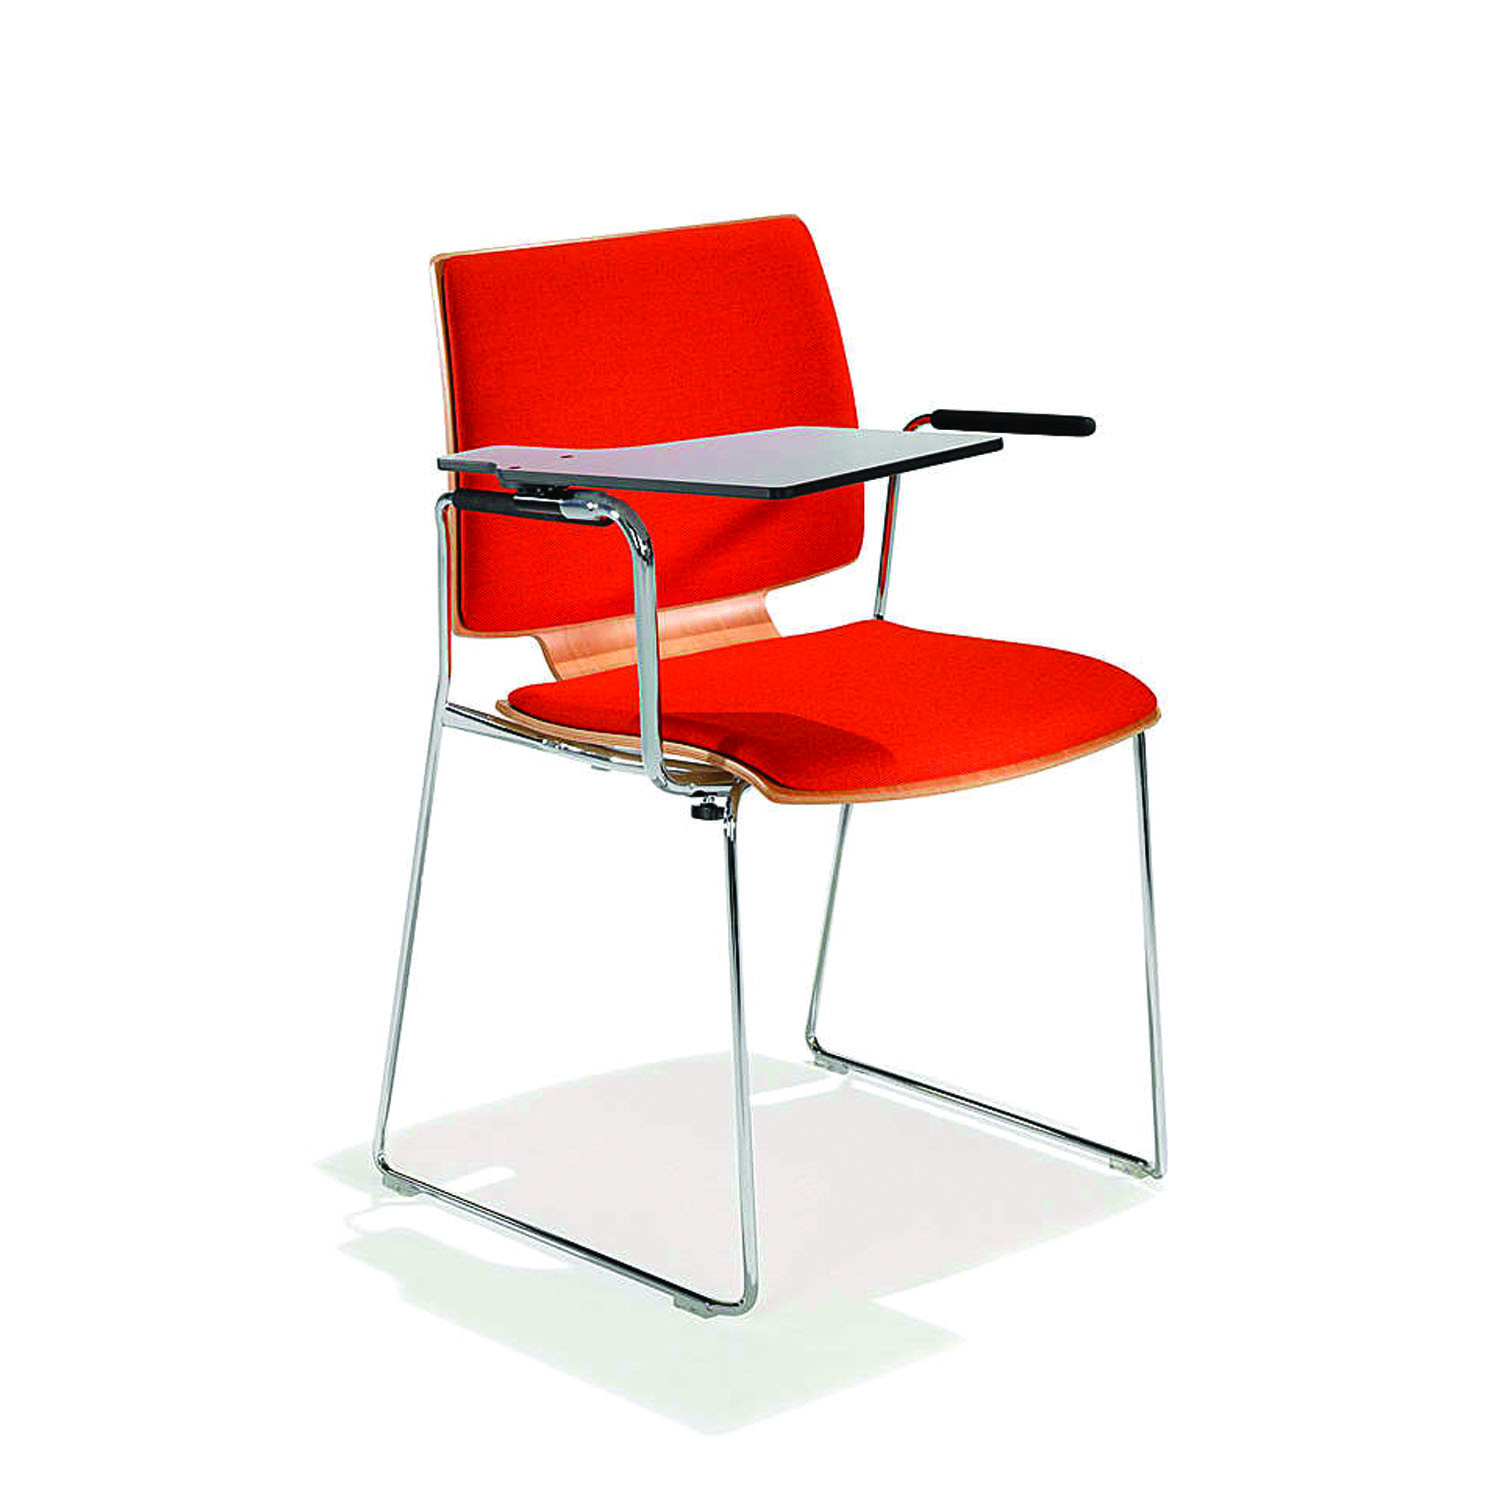 2100 Uni_Verso Chair with writing tablet